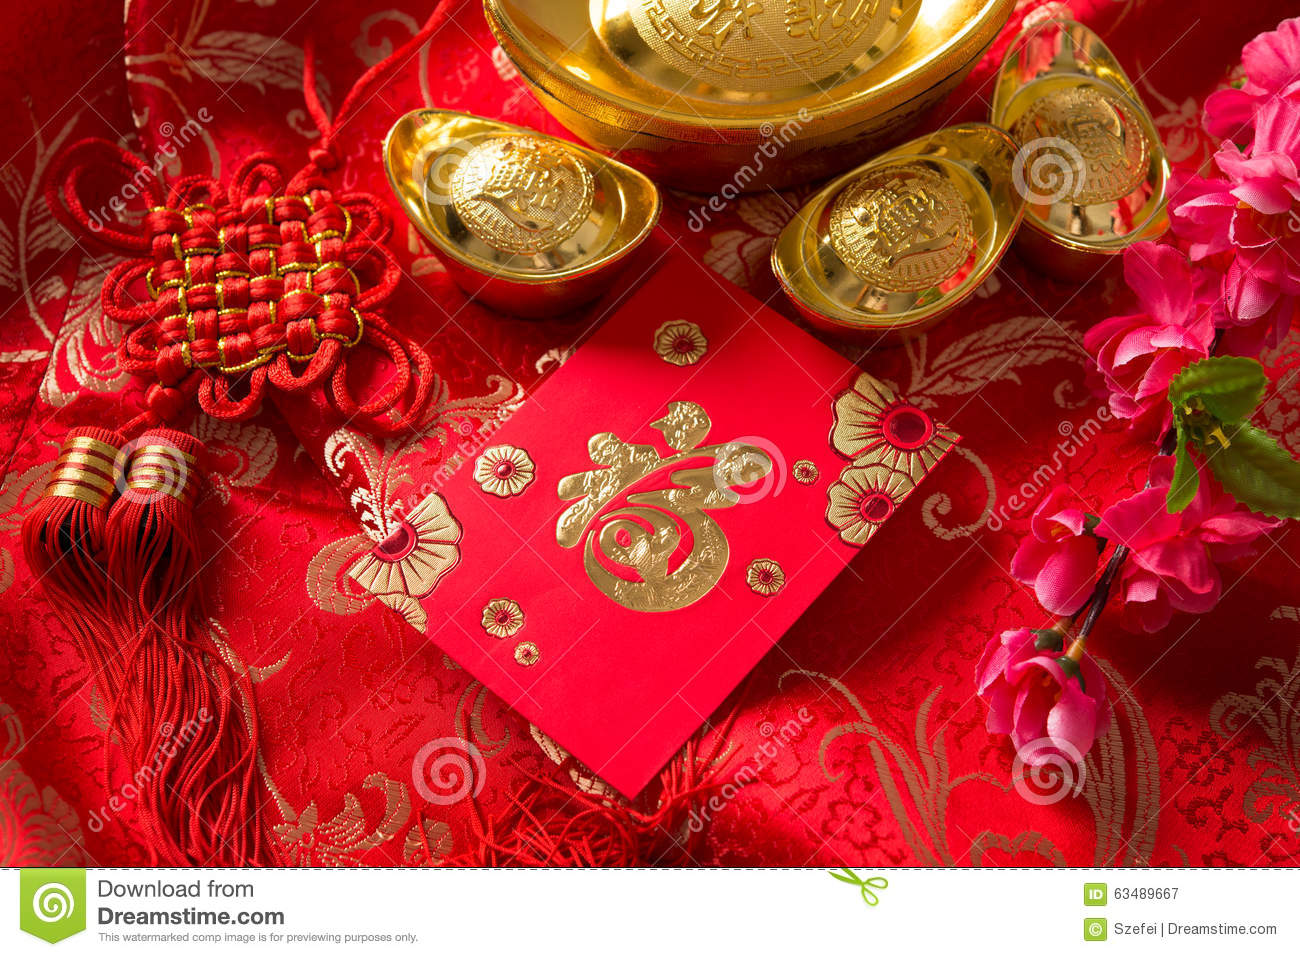 Chinese new year ang pow stock photo image 63489667 for Ang pow packet decoration